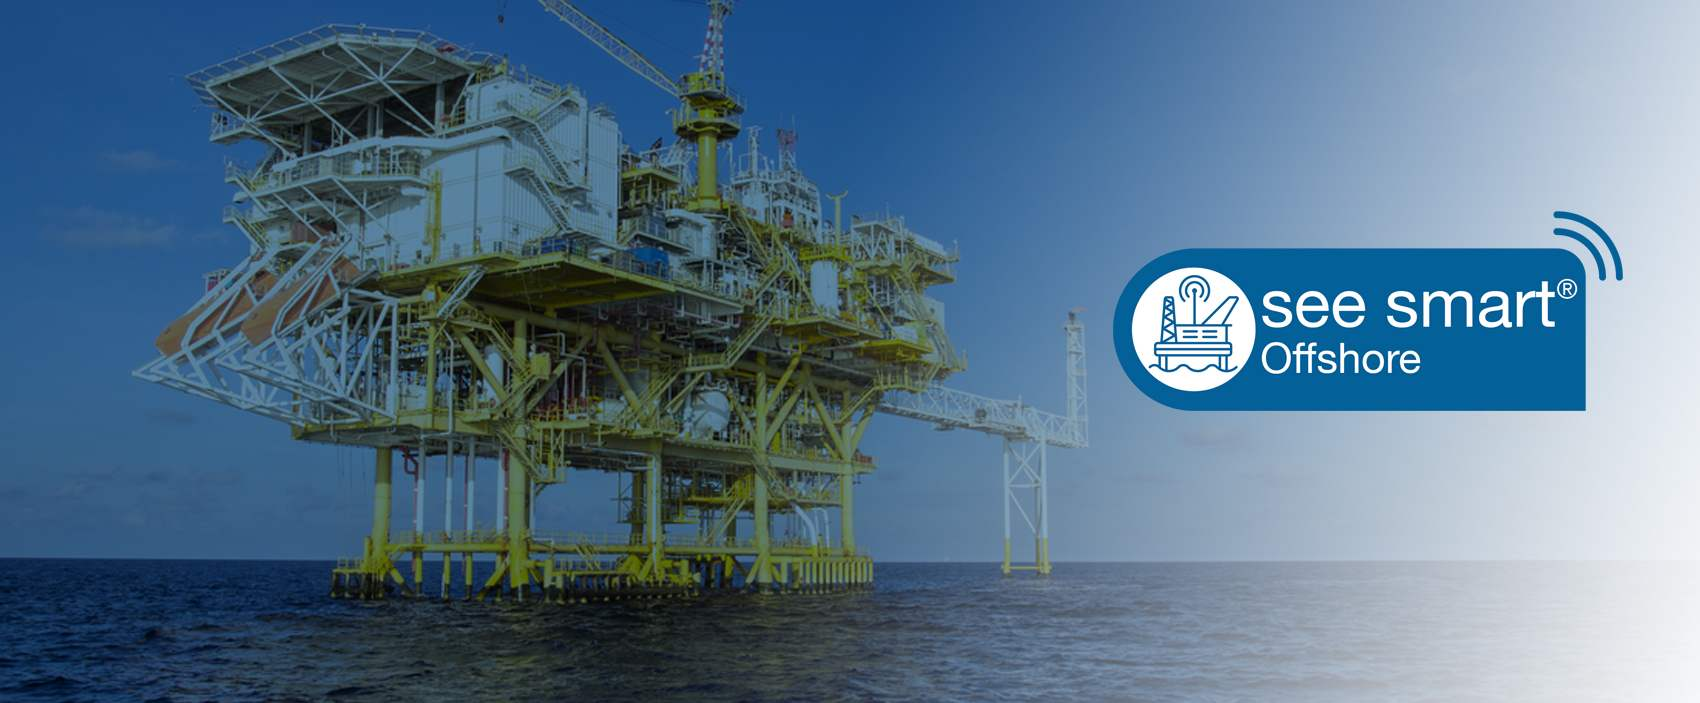 See smart offshore - radio coverage solutions for the offshore industry